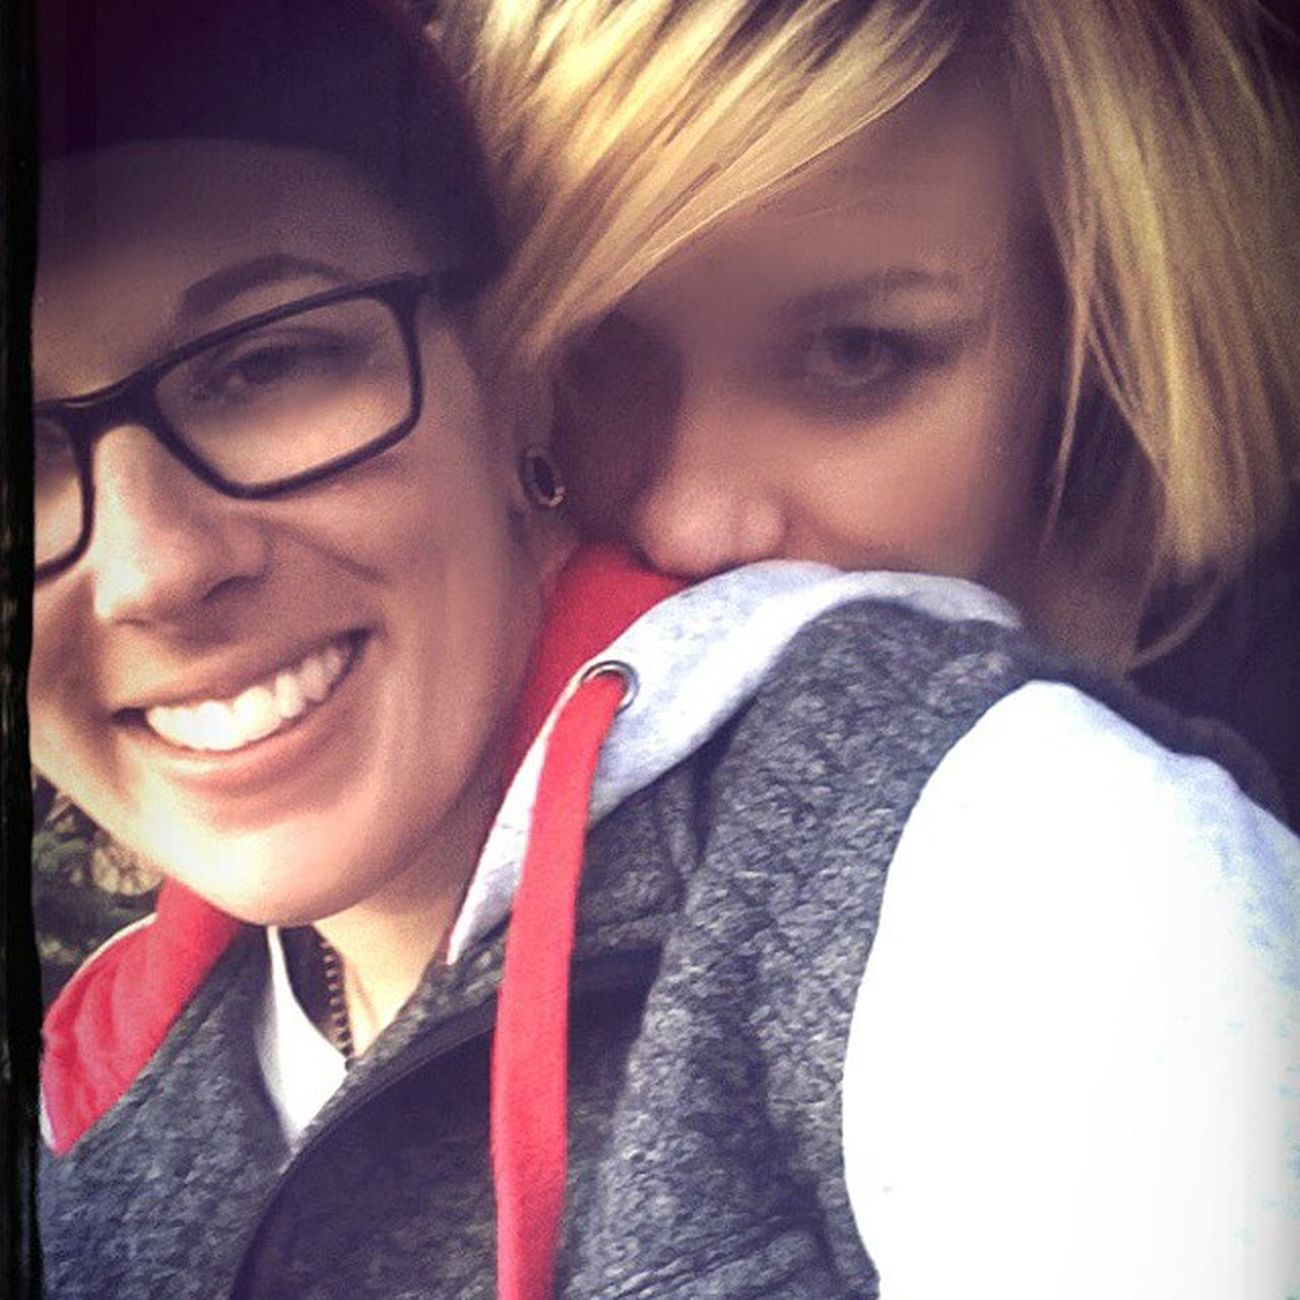 Words can't explain what this girl means to me. I don't smile unless she smiles..The Sun doesnt shine unless she is near..My heart only beats now because I know shes mine! Lesbiansrule LesbiansOnly Lesbiansofwisconsin Lesbiansofinstagram Lovetoloveher Lesbianshoutout Lesbiansdoitbetter Lesbianswagger Lesbianswag  Loveislove Yourlossnothers Truelove Soulmatesforlife Lesbianswithtattoosandpiercings Lesbianpride Lesbianlove Lesbiancouplesofinstagram Lesbihonest Midwestlesbians Lesbiancouple